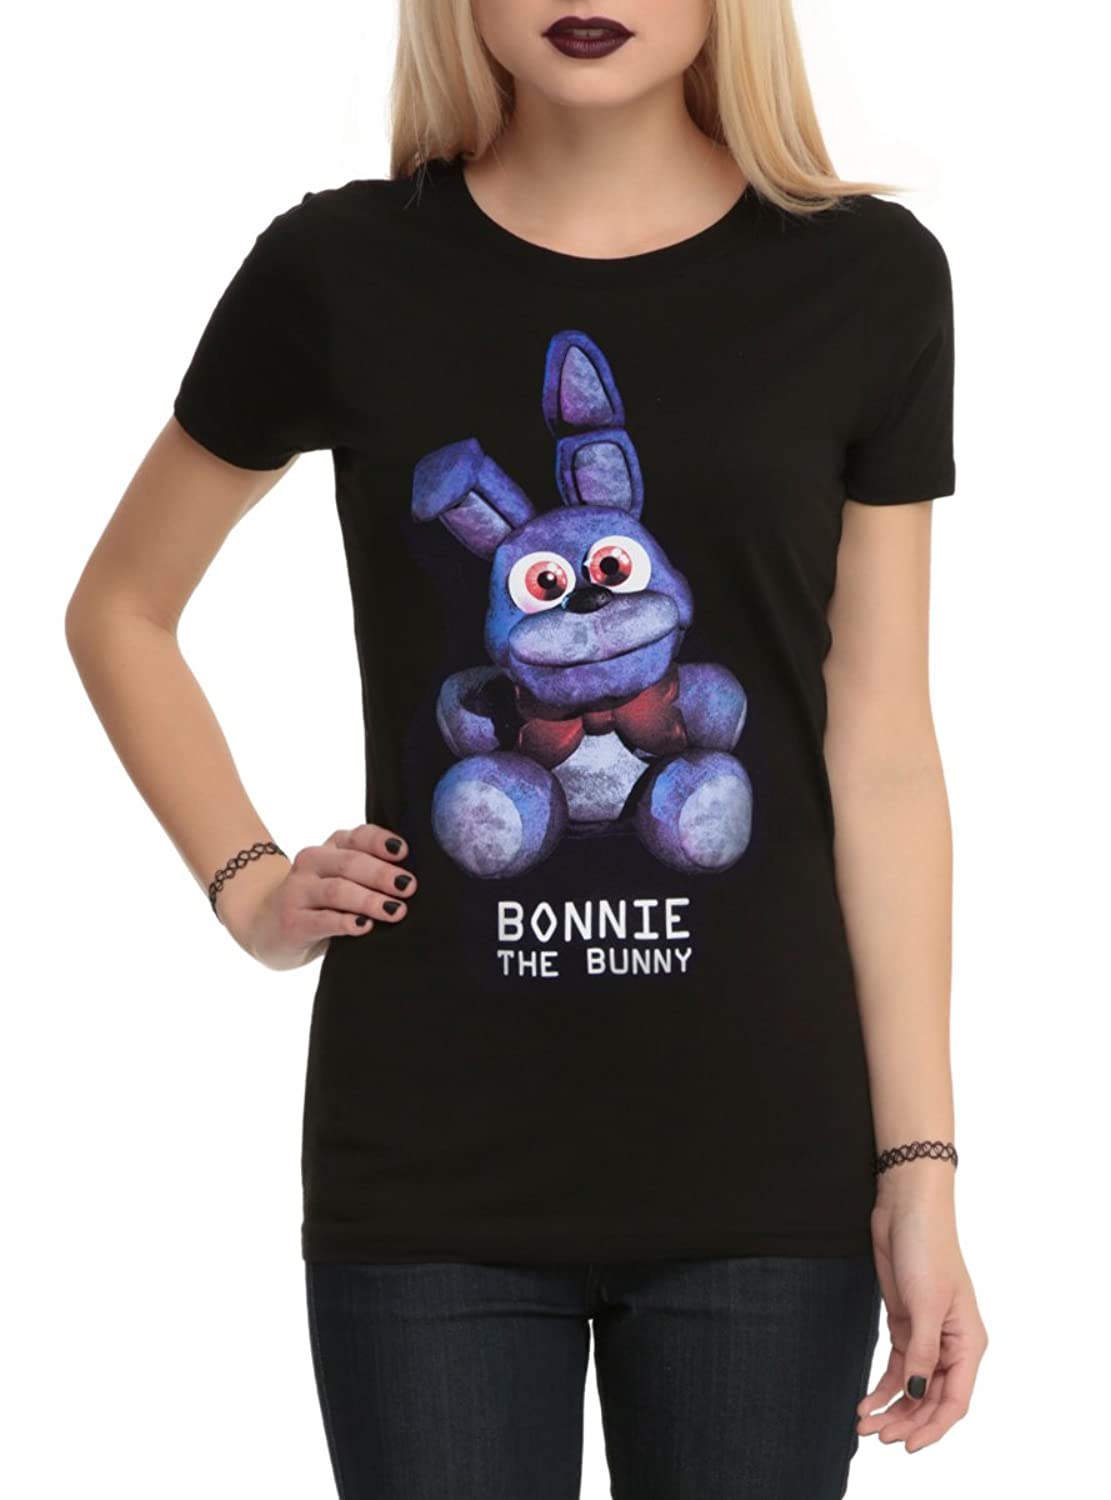 Five Nights At Freddy's Bonnie The Bunny Girls T-Shirt